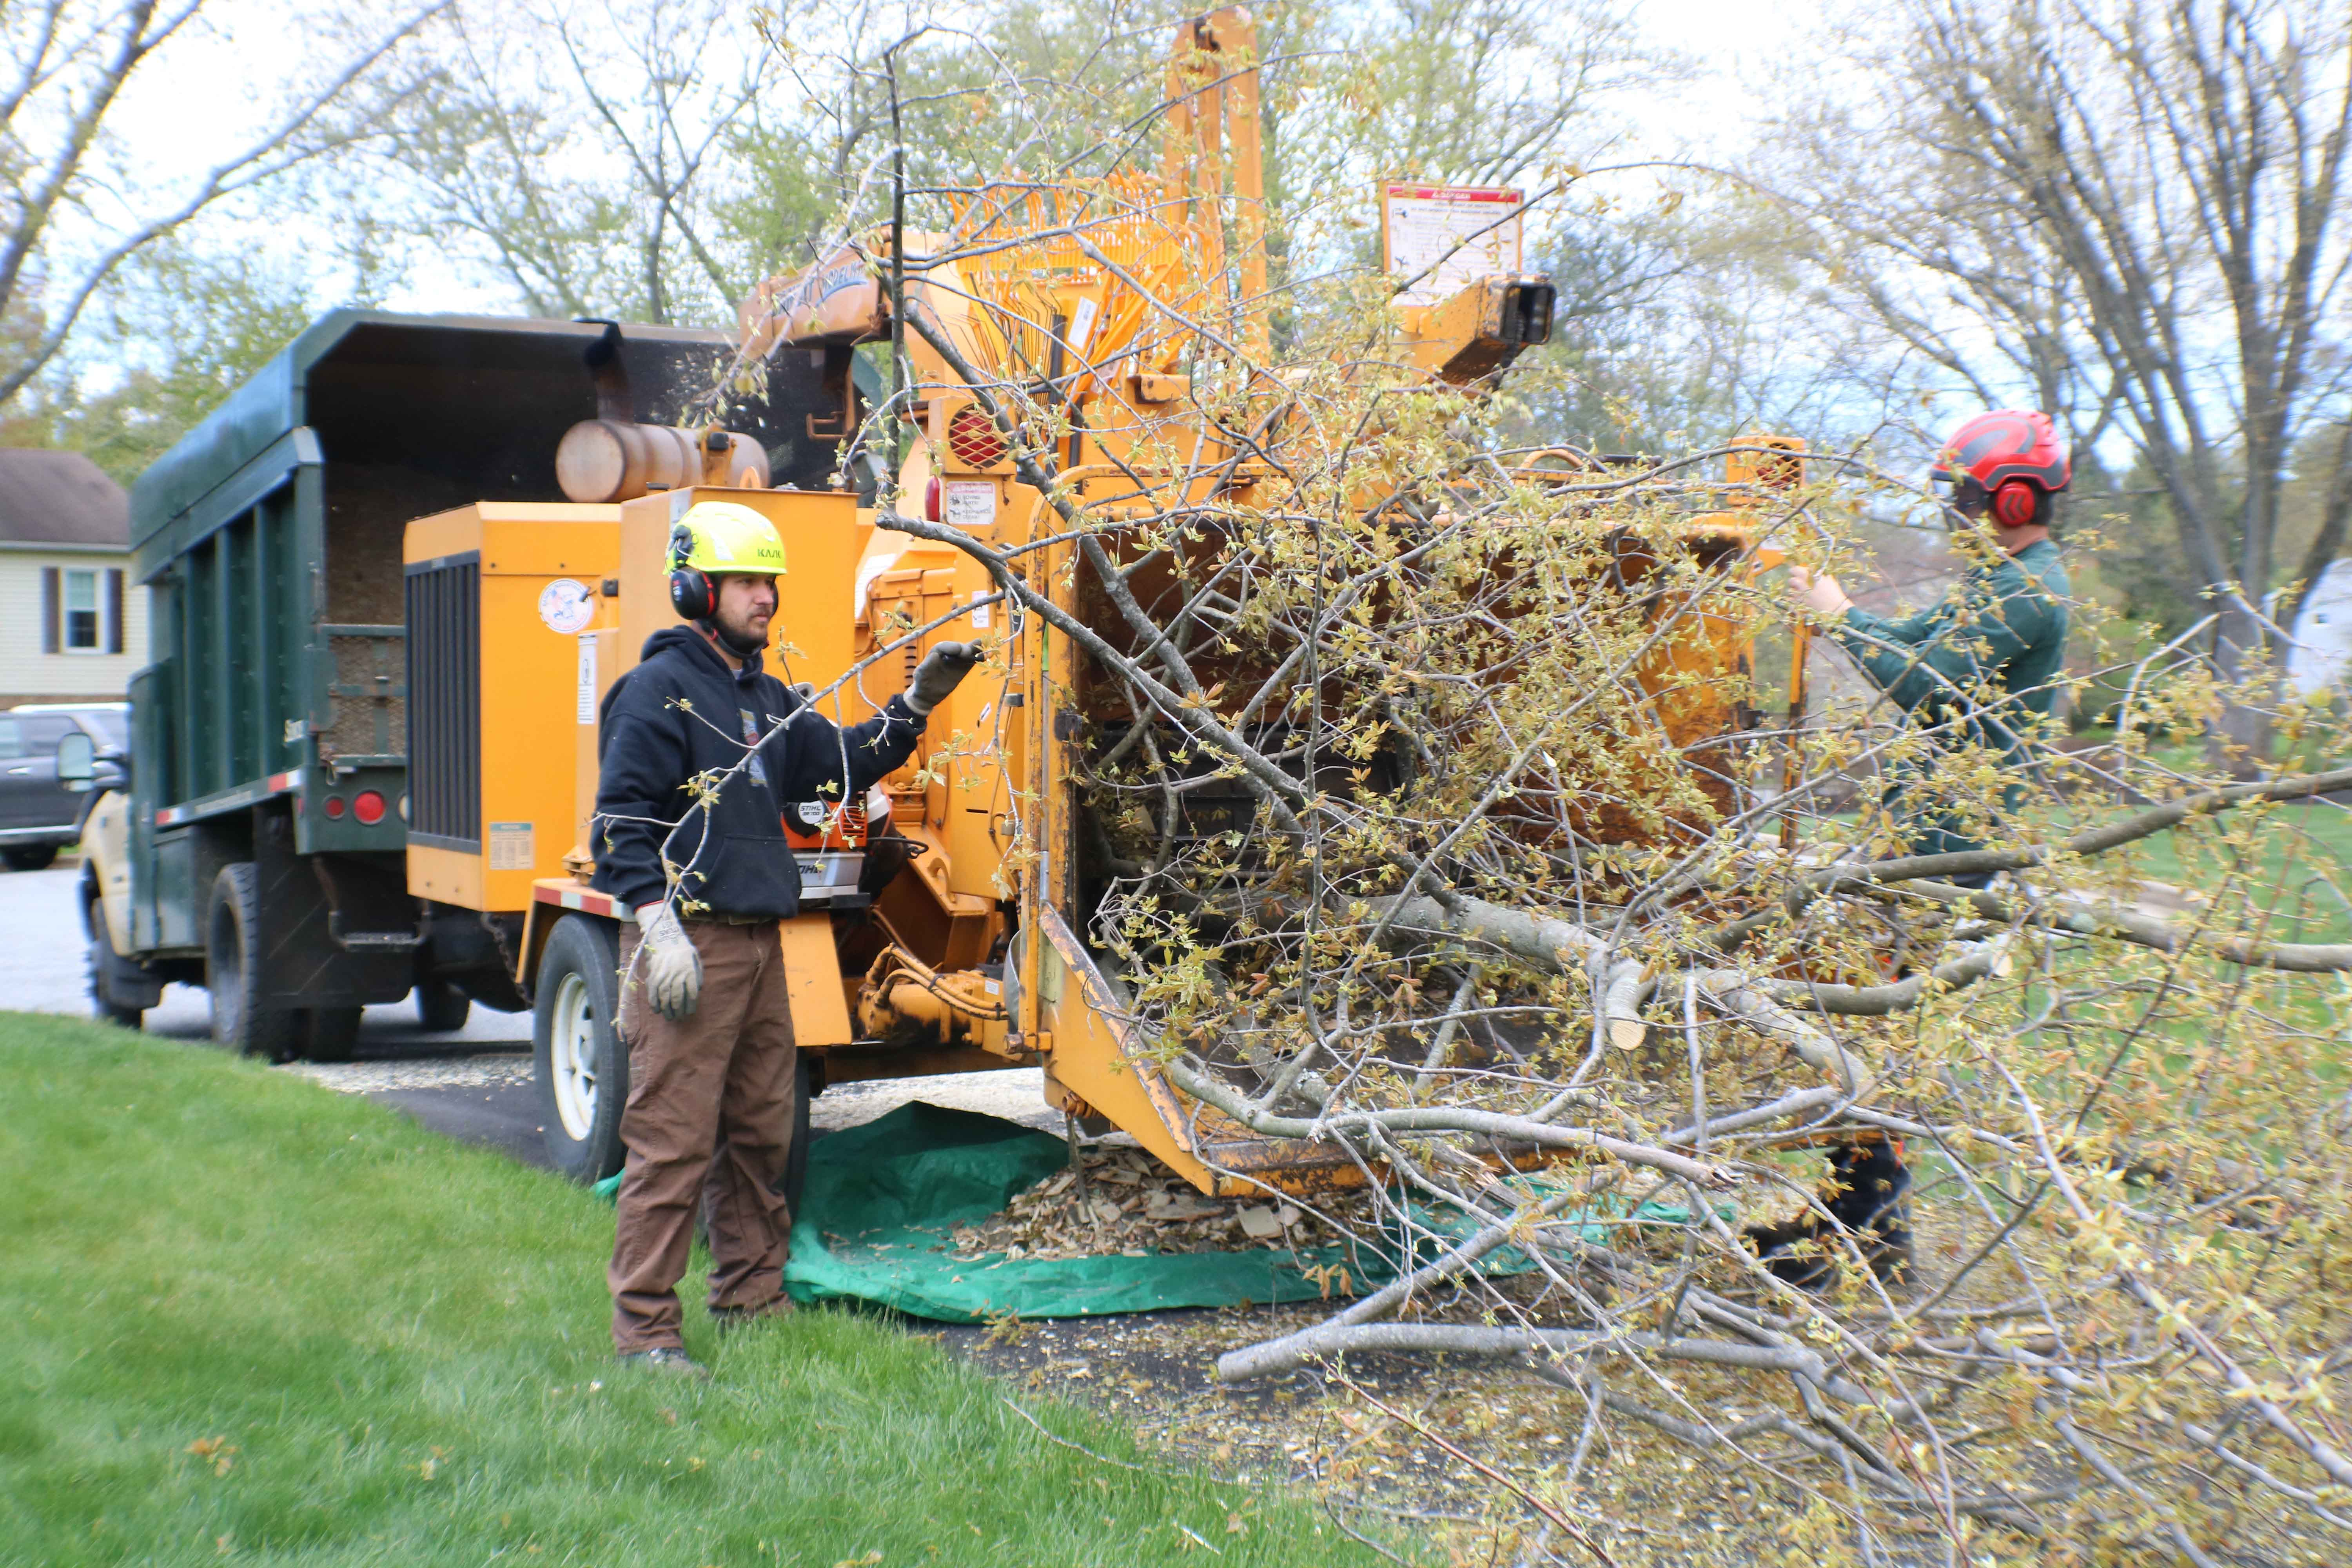 chipping limbs and branches with the chipper